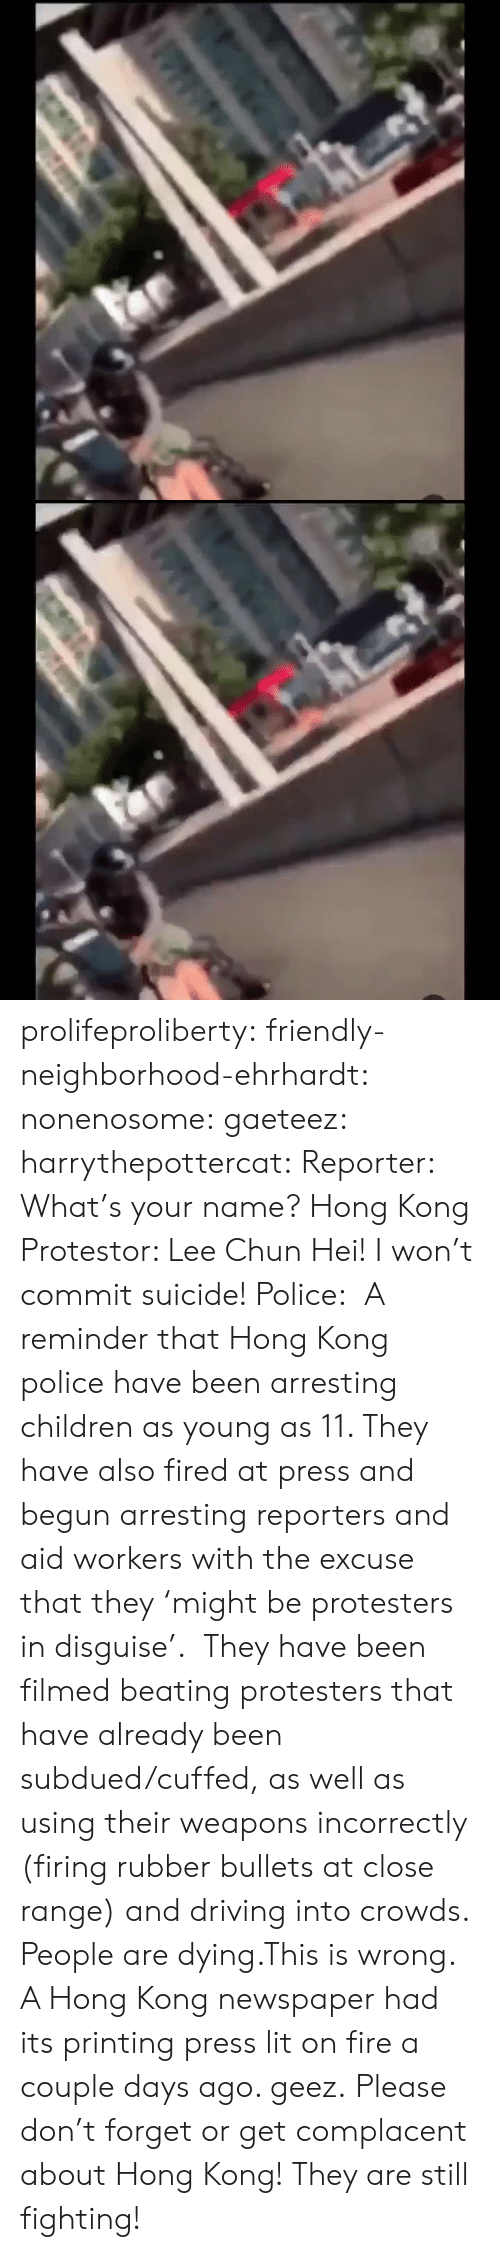 beating: के.  ॥ल prolifeproliberty:  friendly-neighborhood-ehrhardt:  nonenosome:  gaeteez:   harrythepottercat:  Reporter: What's your name? Hong Kong Protestor: Lee Chun Hei! I won't commit suicide! Police:    A reminder that Hong Kong police have been arresting children as young as 11. They have also fired at press and begun arresting reporters and aid workers with the excuse that they 'might be protesters in disguise'.  They have been filmed beating protesters that have already been subdued/cuffed, as well as using their weapons incorrectly (firing rubber bullets at close range) and driving into crowds.  People are dying.This is wrong.    A Hong Kong newspaper had its printing press lit on fire a couple days ago.   geez.   Please don't forget or get complacent about Hong Kong! They are still fighting!